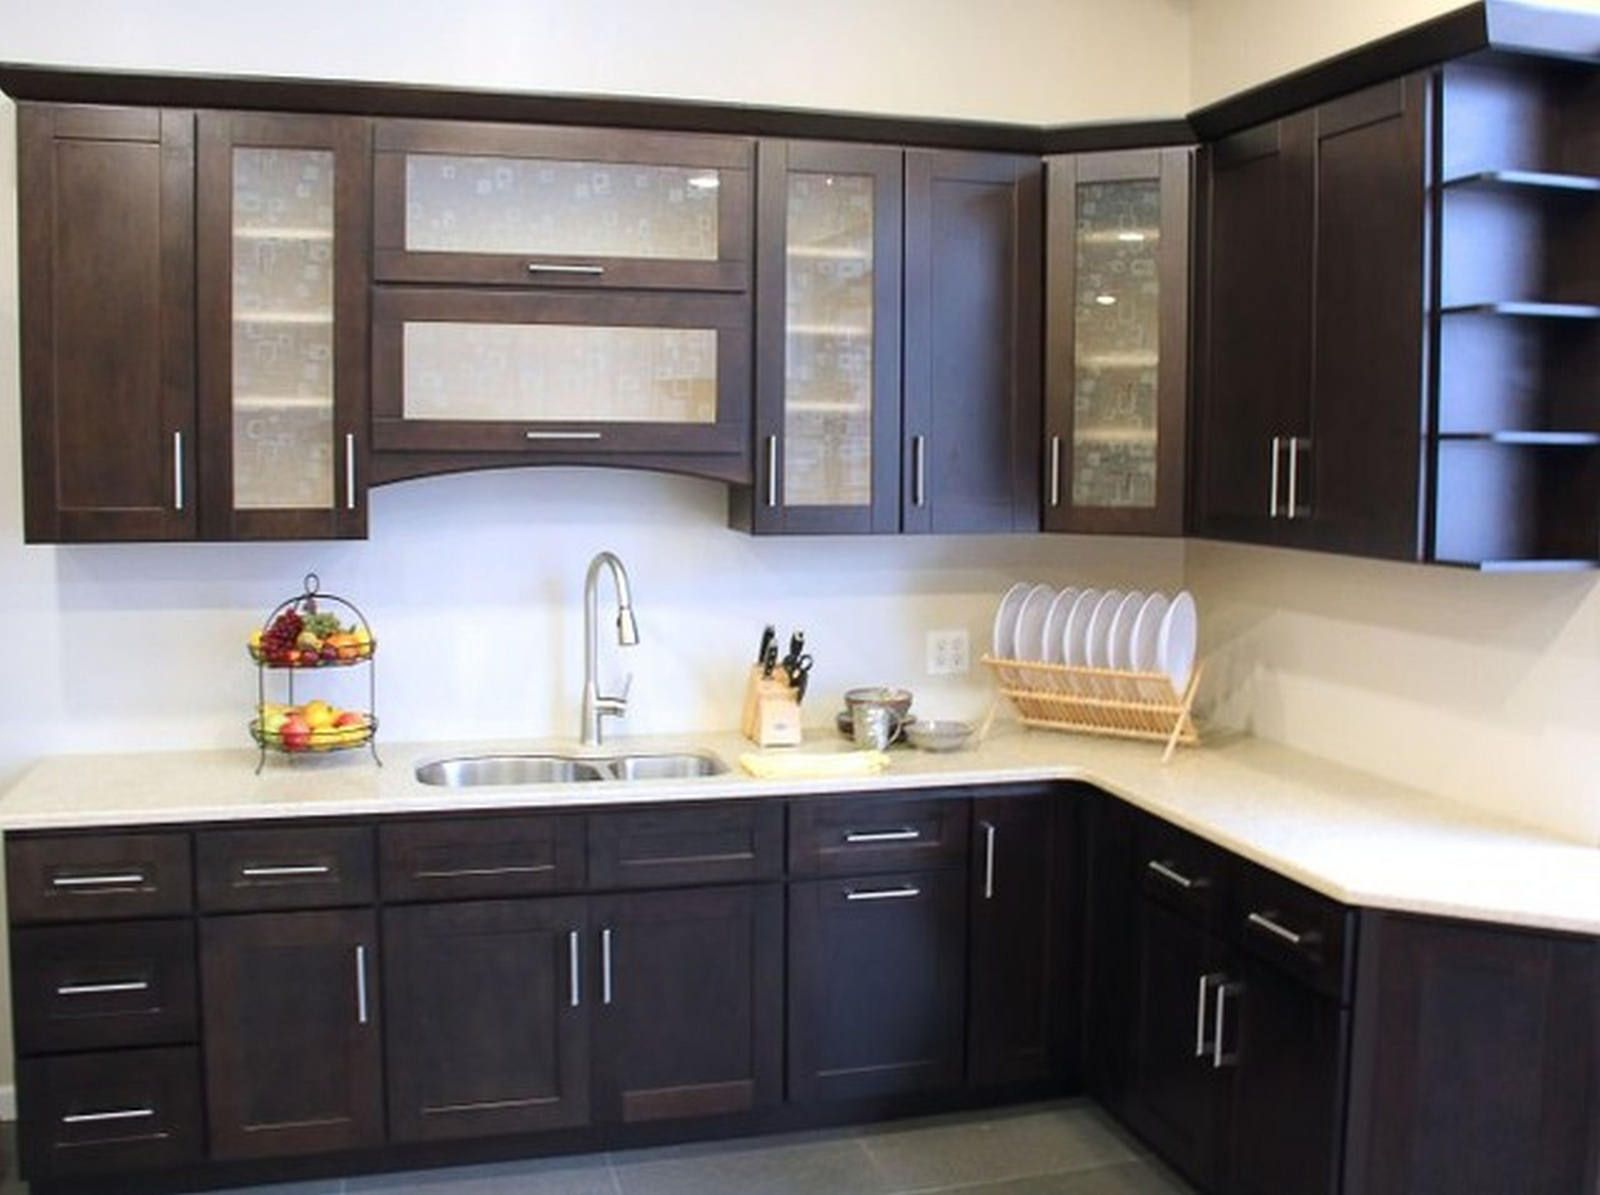 Affordable modern kitchen cabinets kitchen design ideas